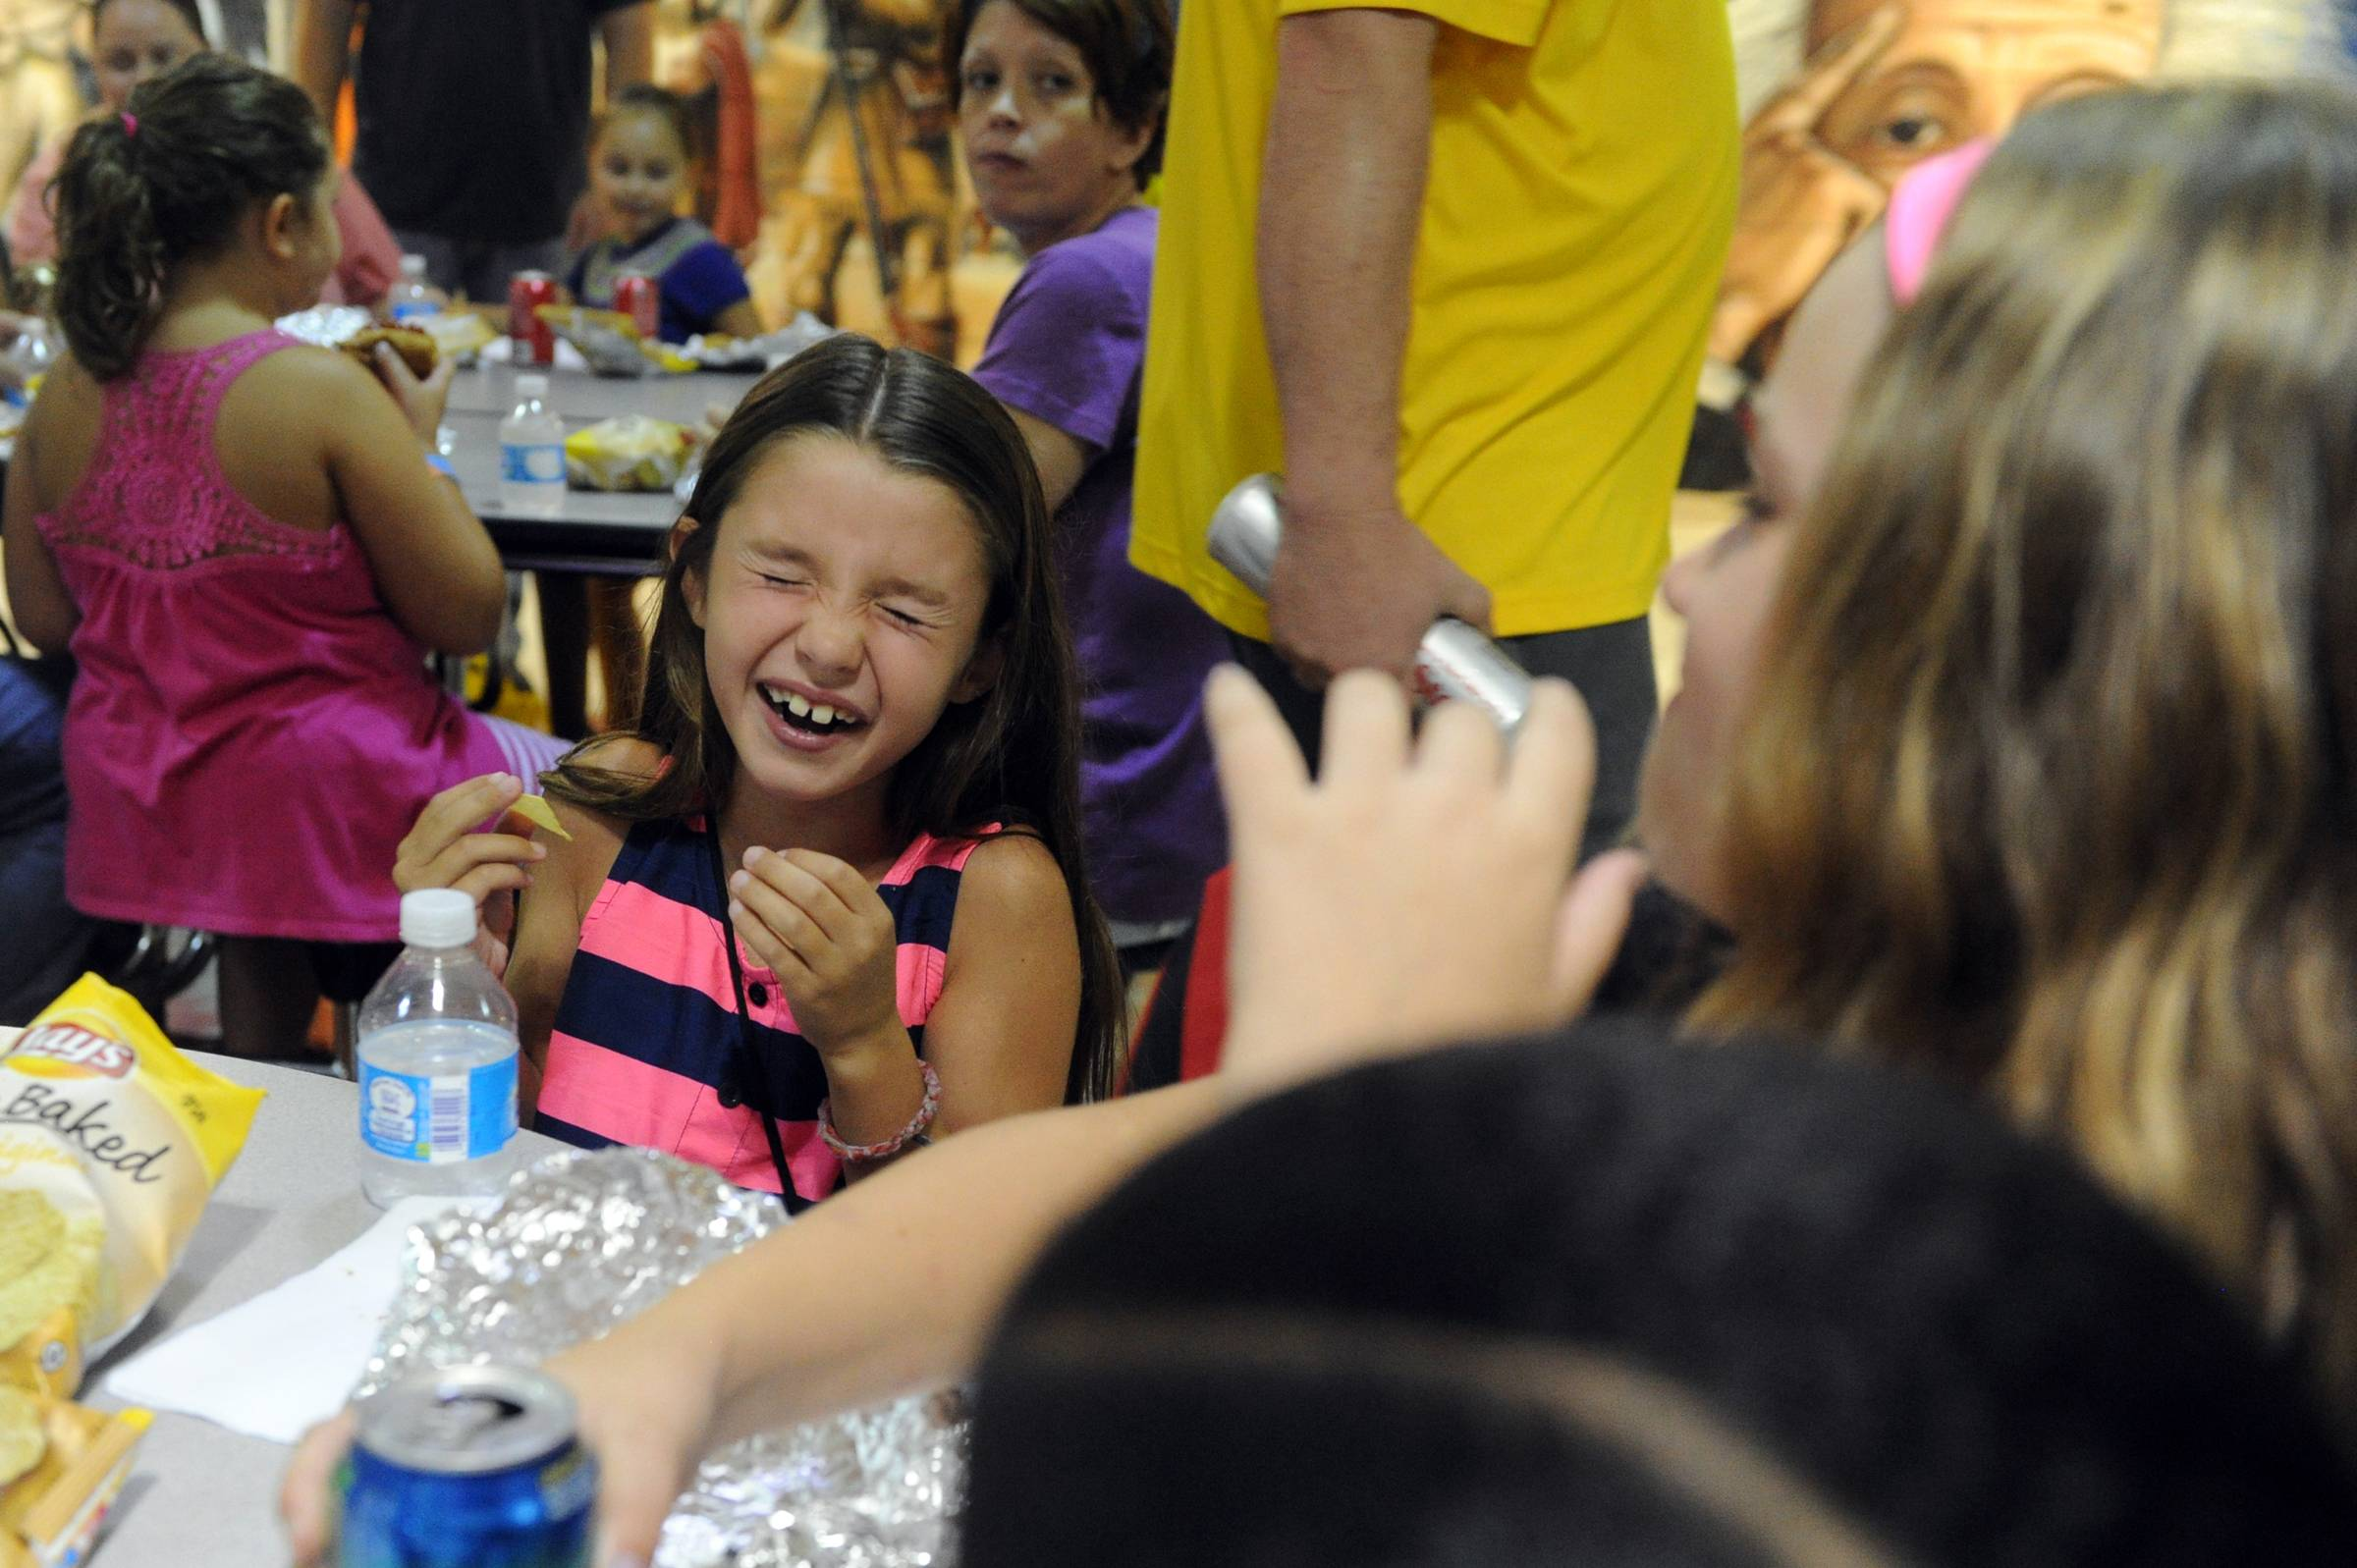 Fourth-grader Avery Stephens, 9, center, laughs as she eats with her friends, Alexa Cecil, 10, right, at the Sharon Elementary School's back to school picnic in Newburgh, Ind.